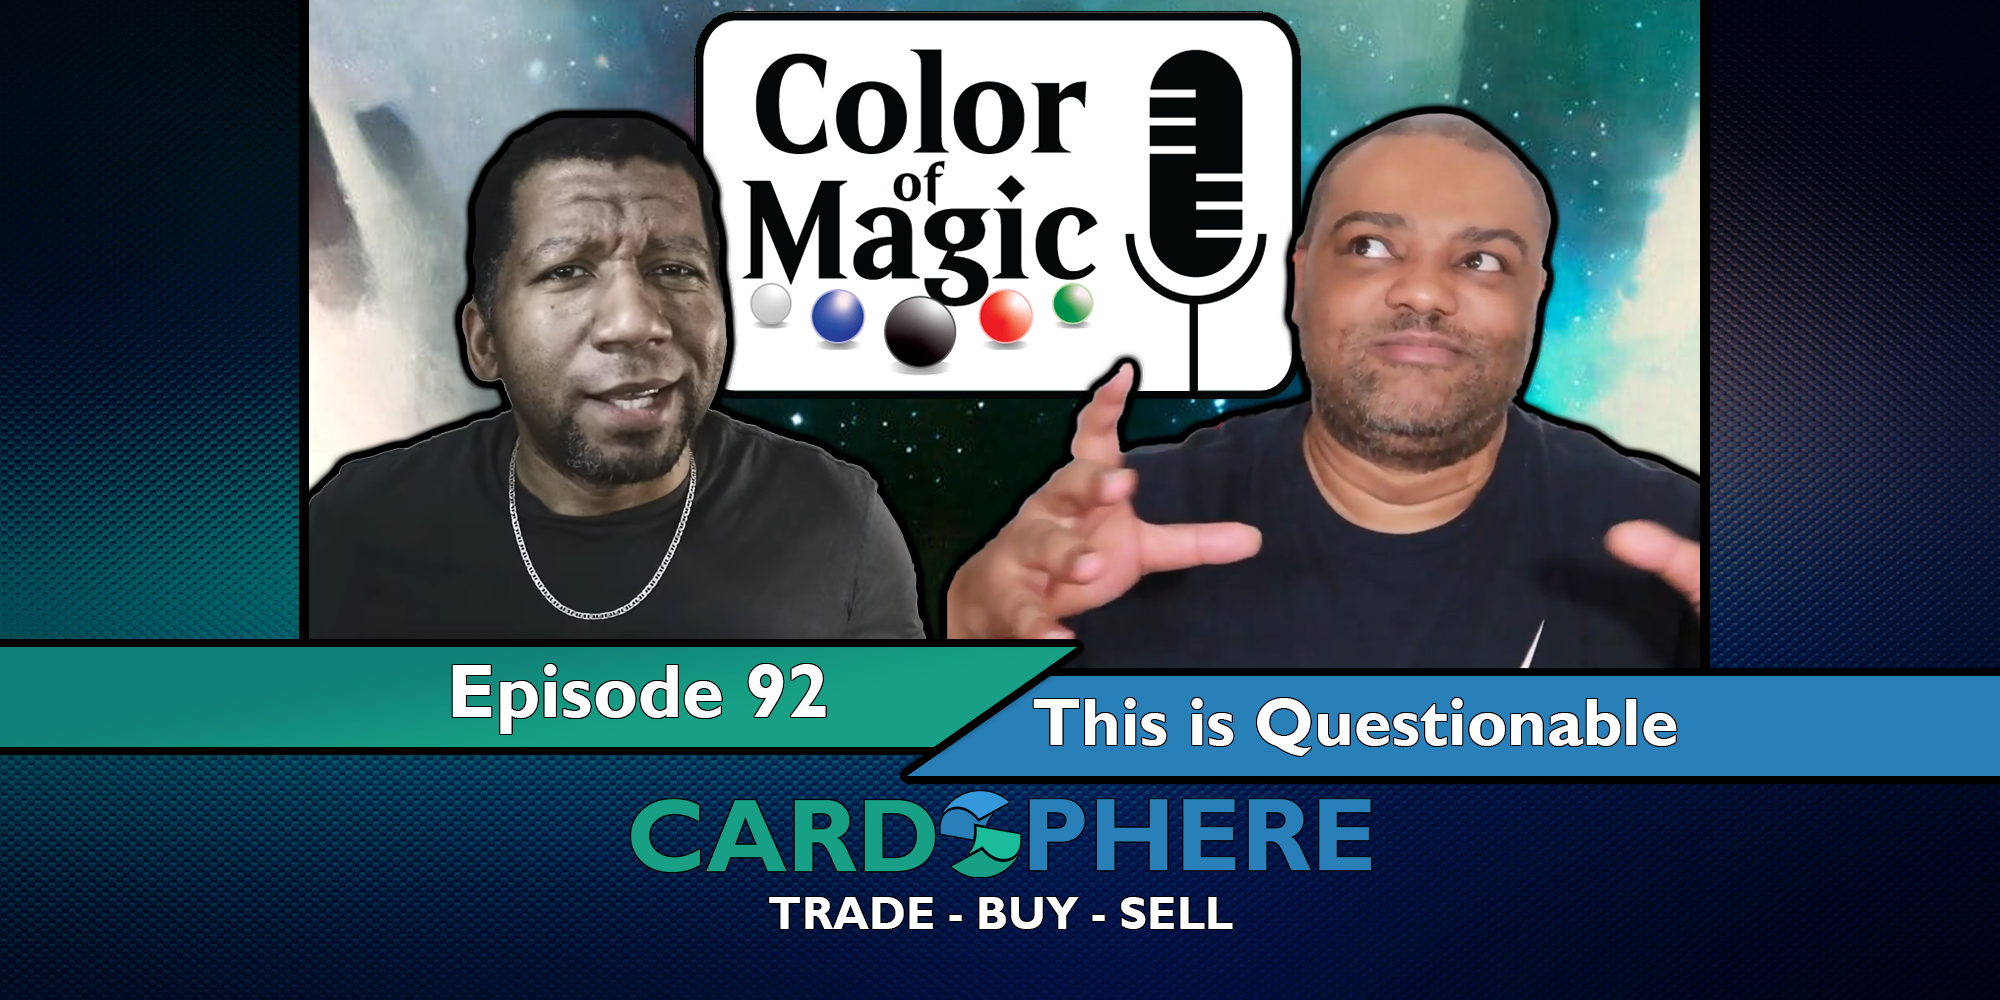 Color of Magic Episode 92 - This is Questionable